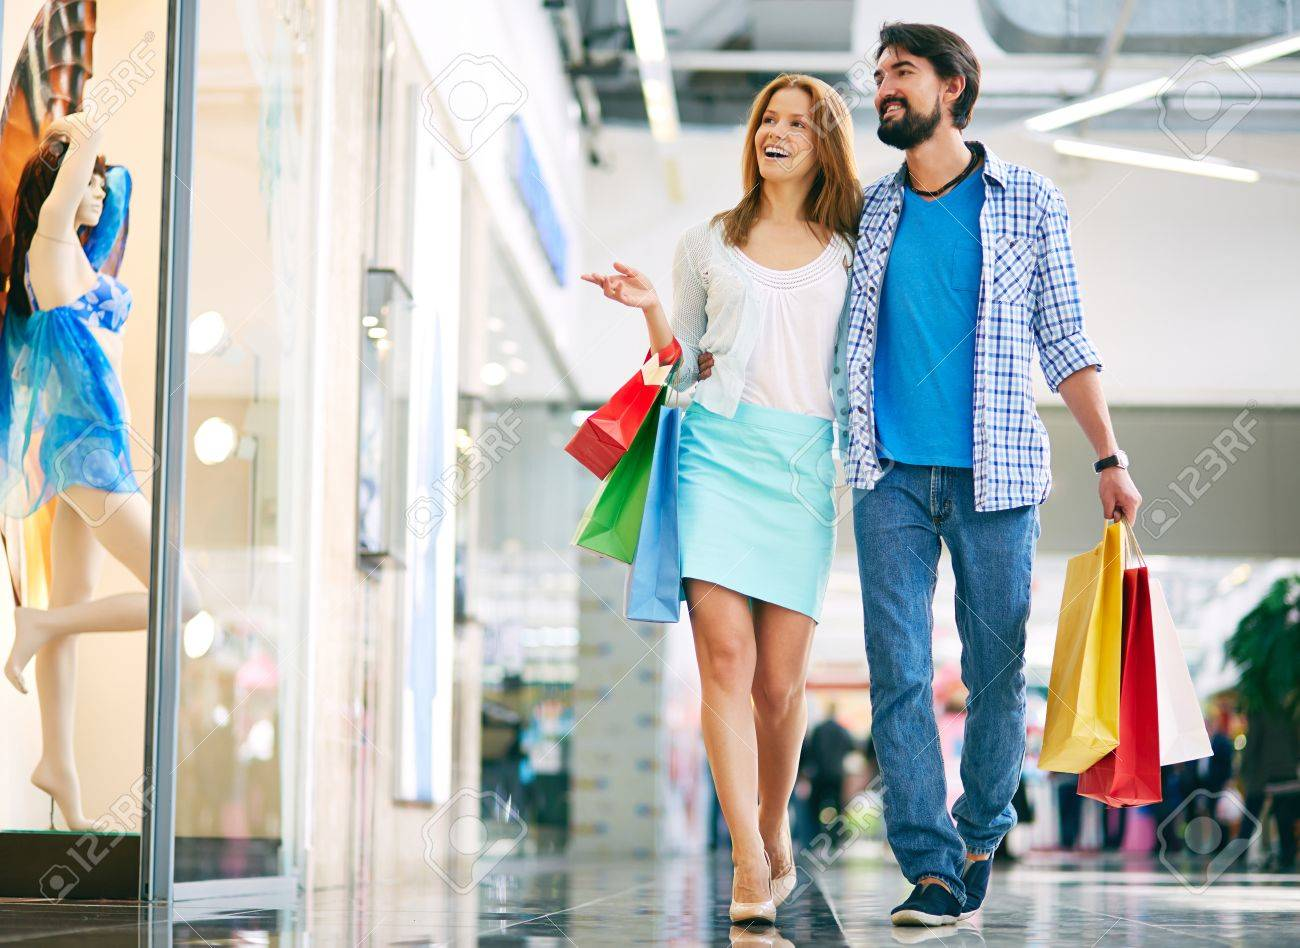 Beautiful couple walking through the mall and carrying shopping bags Stock Photo - 52936133